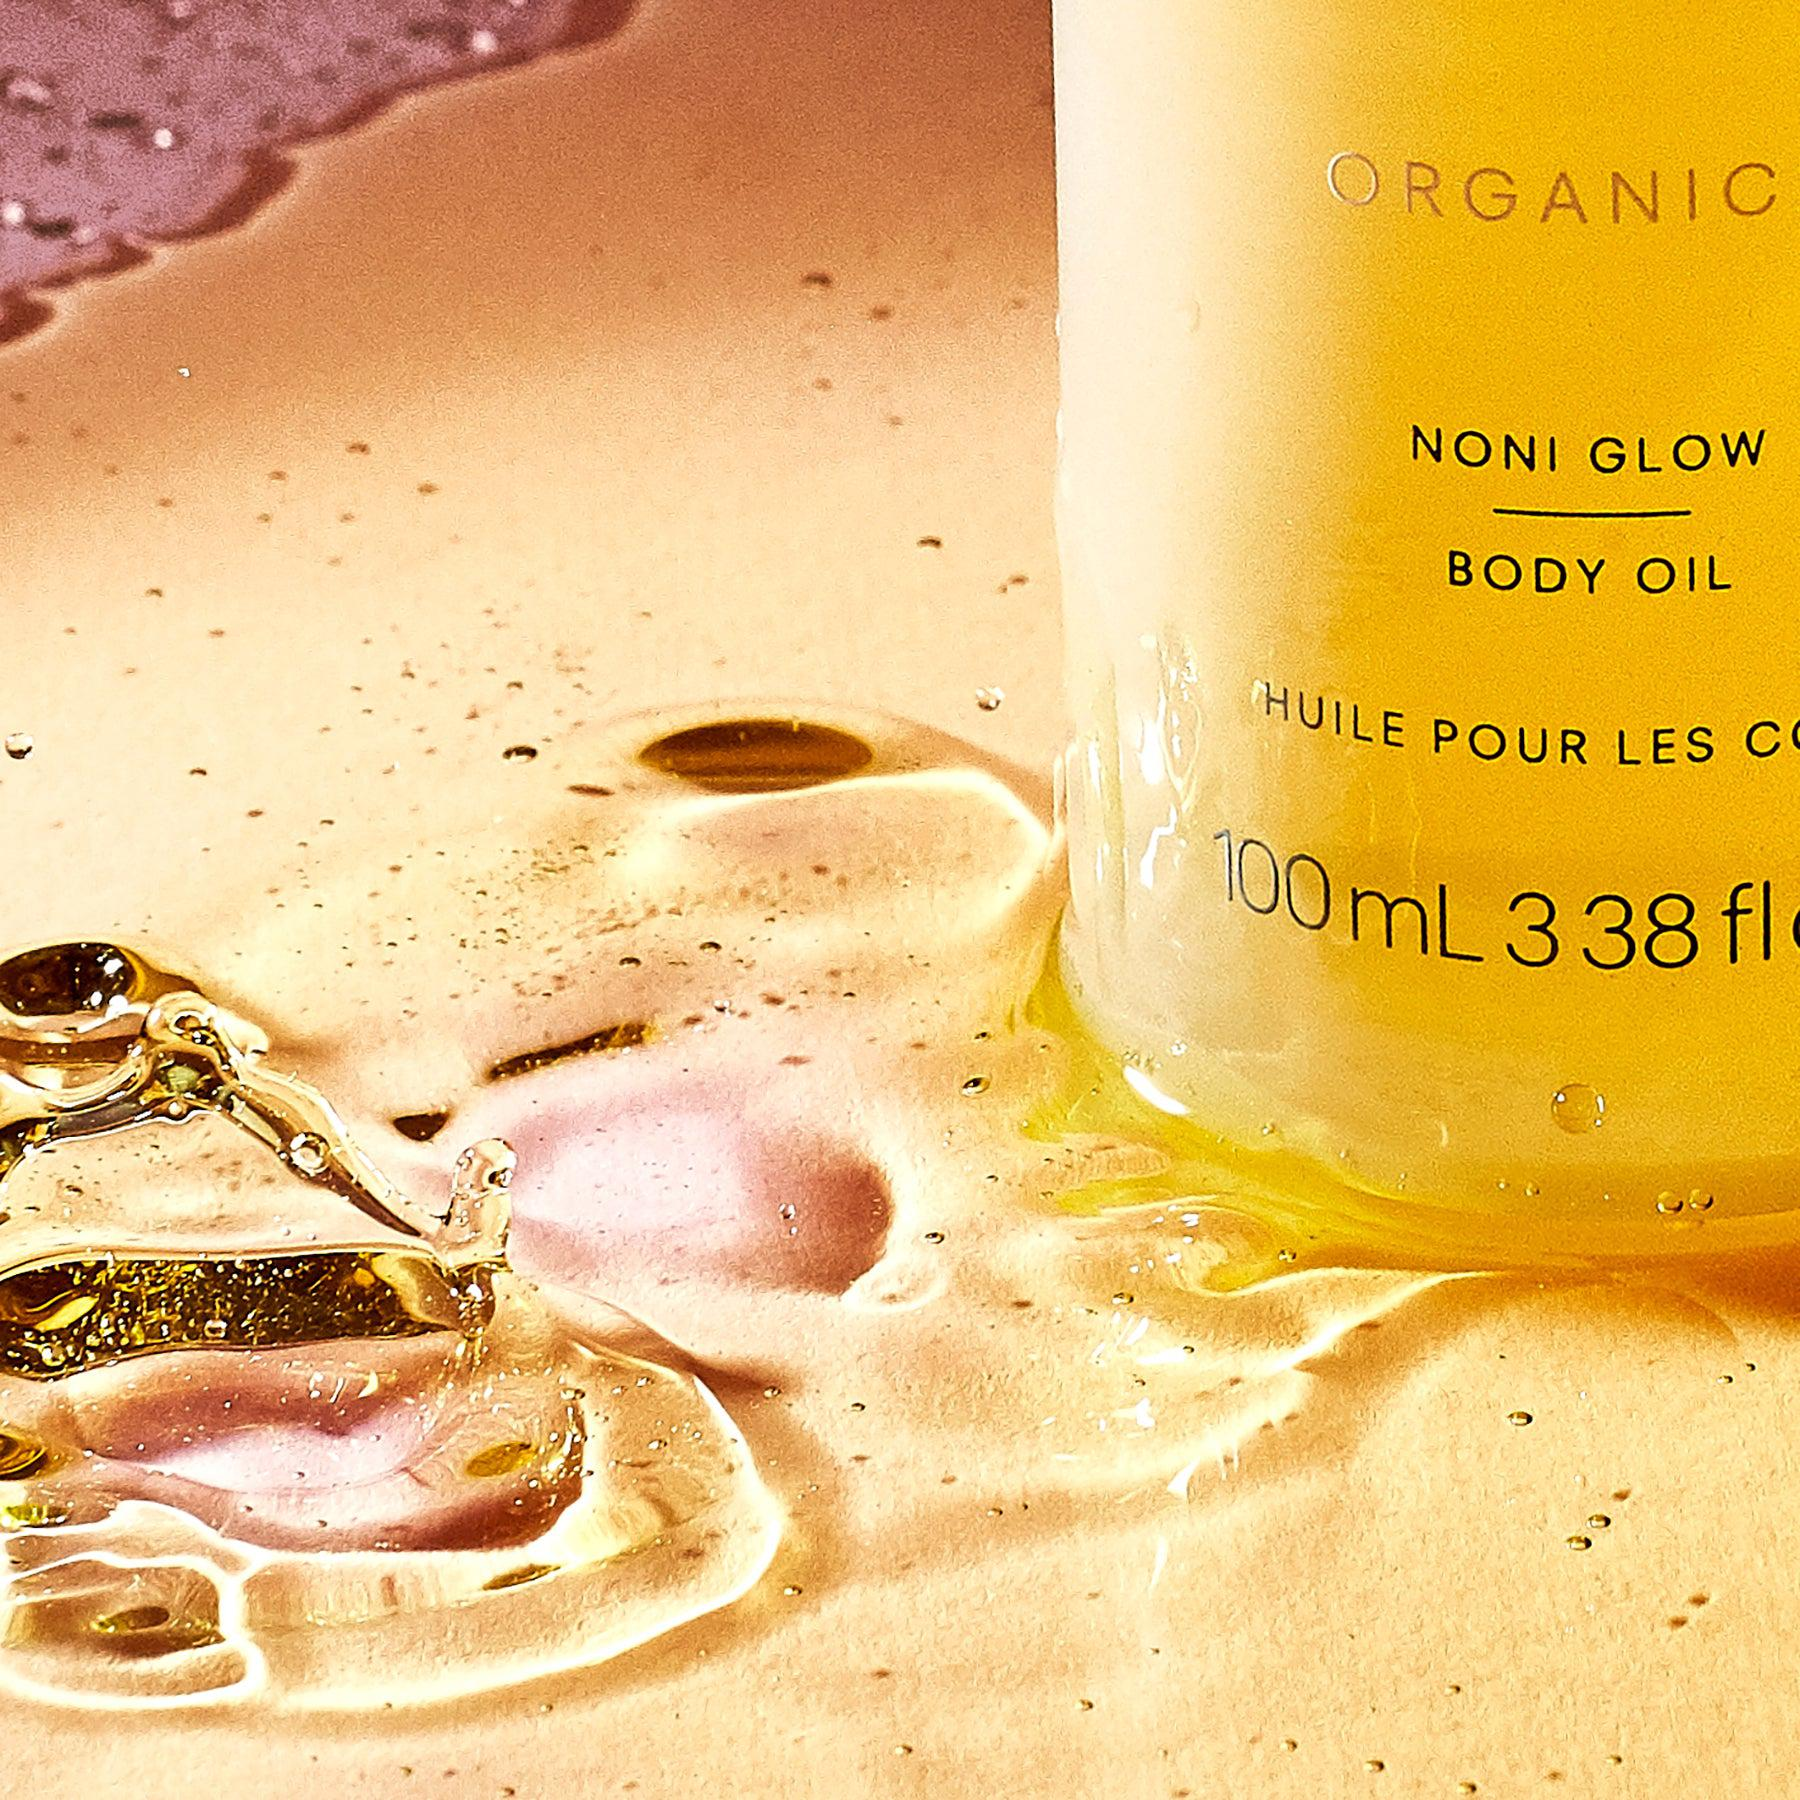 Noni Glow Body Oil